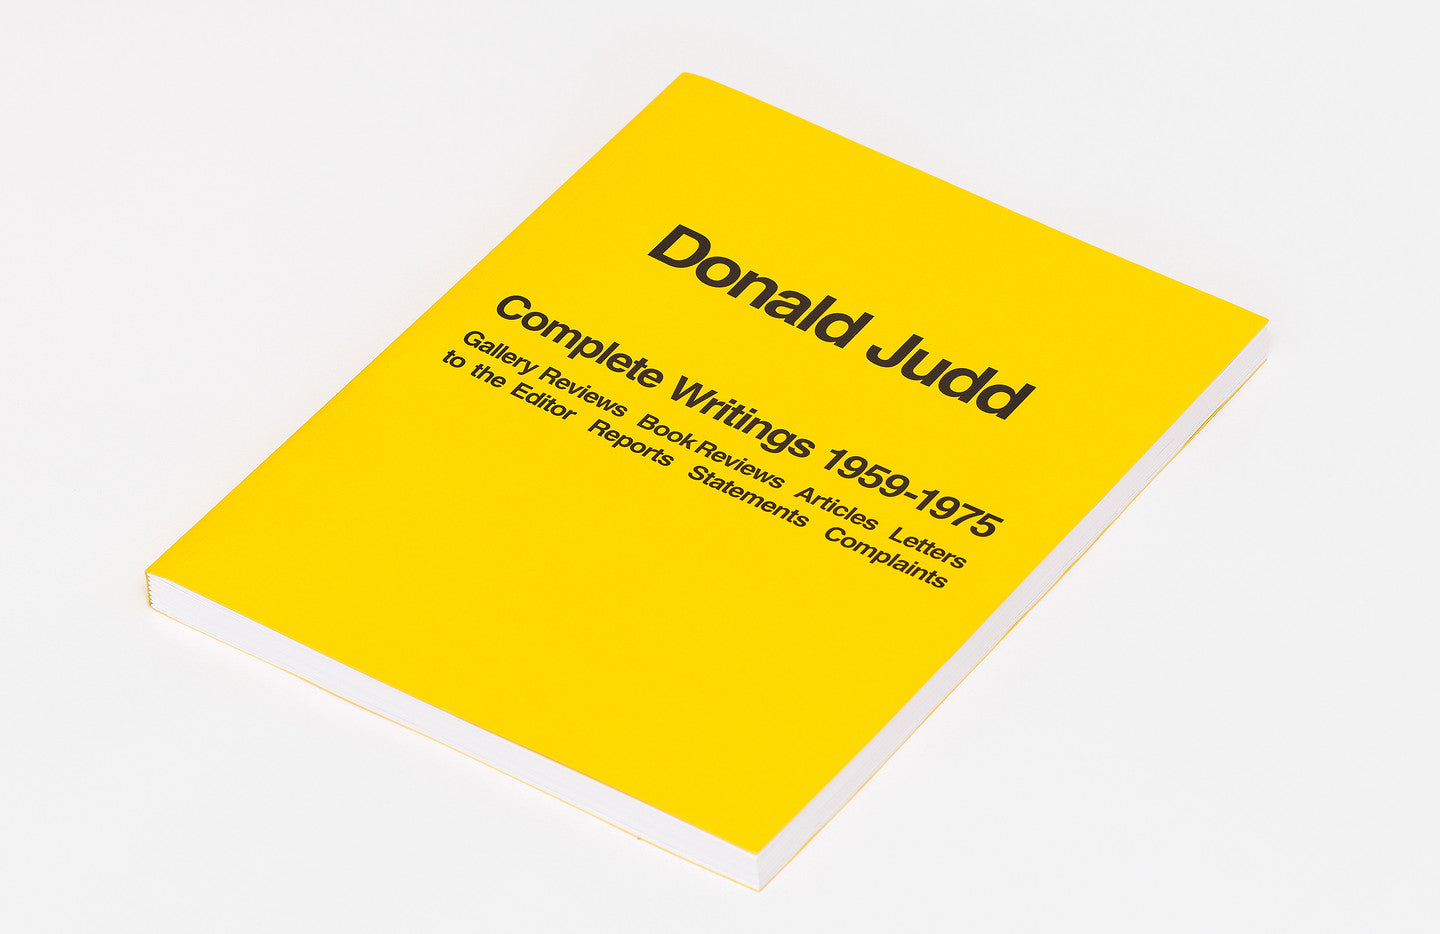 Donald Judd: Complete Writings 1959-1975